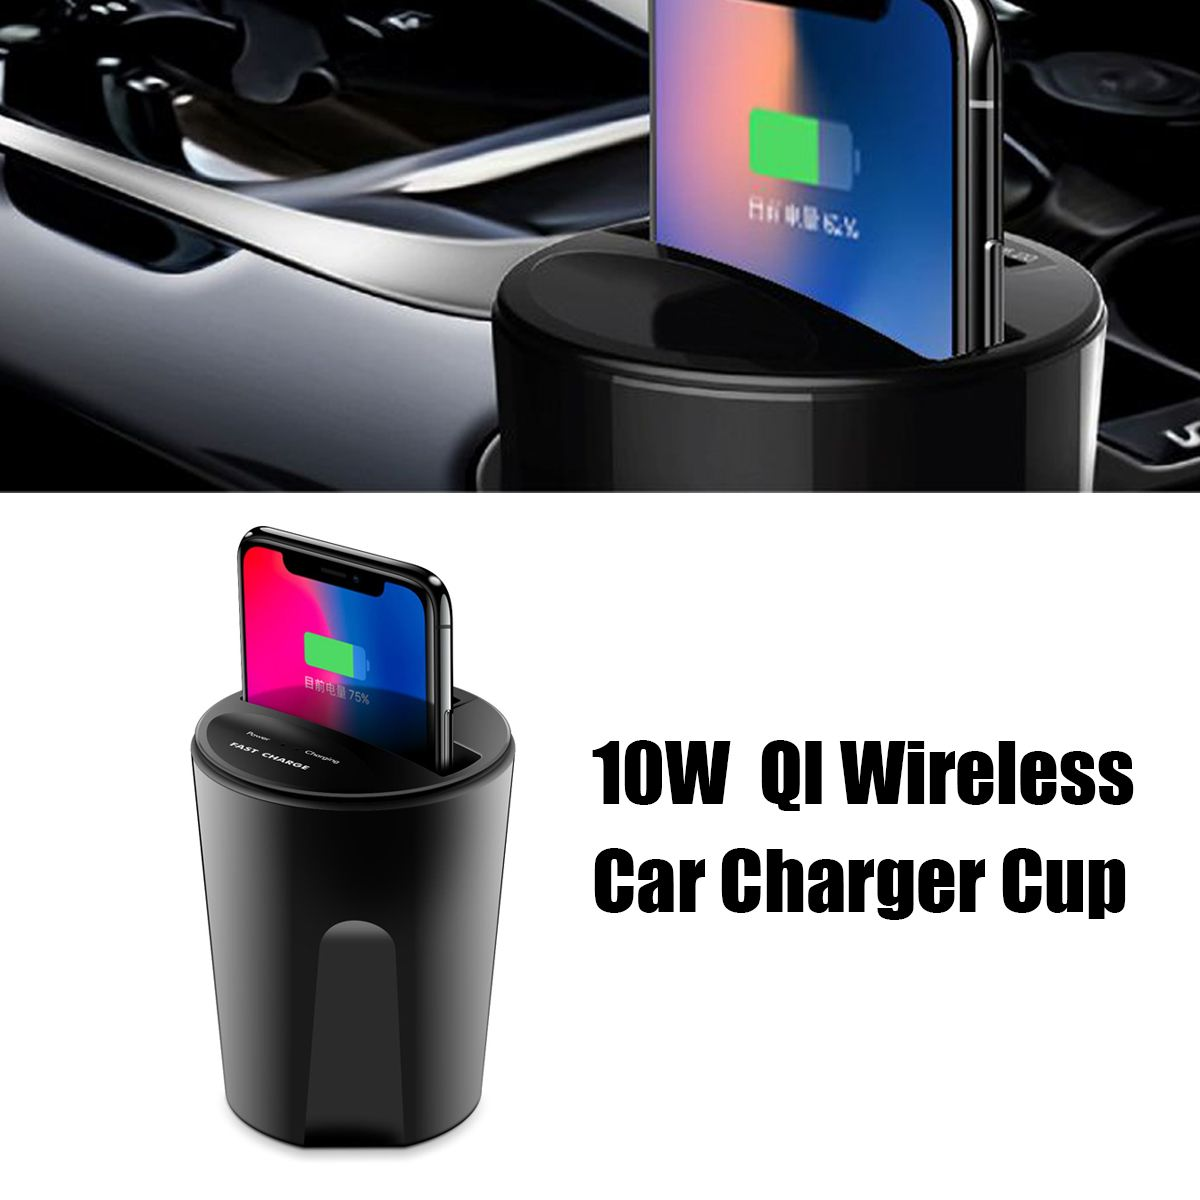 10w Qi Wireless Charger Holder Cup Fast Charging Car